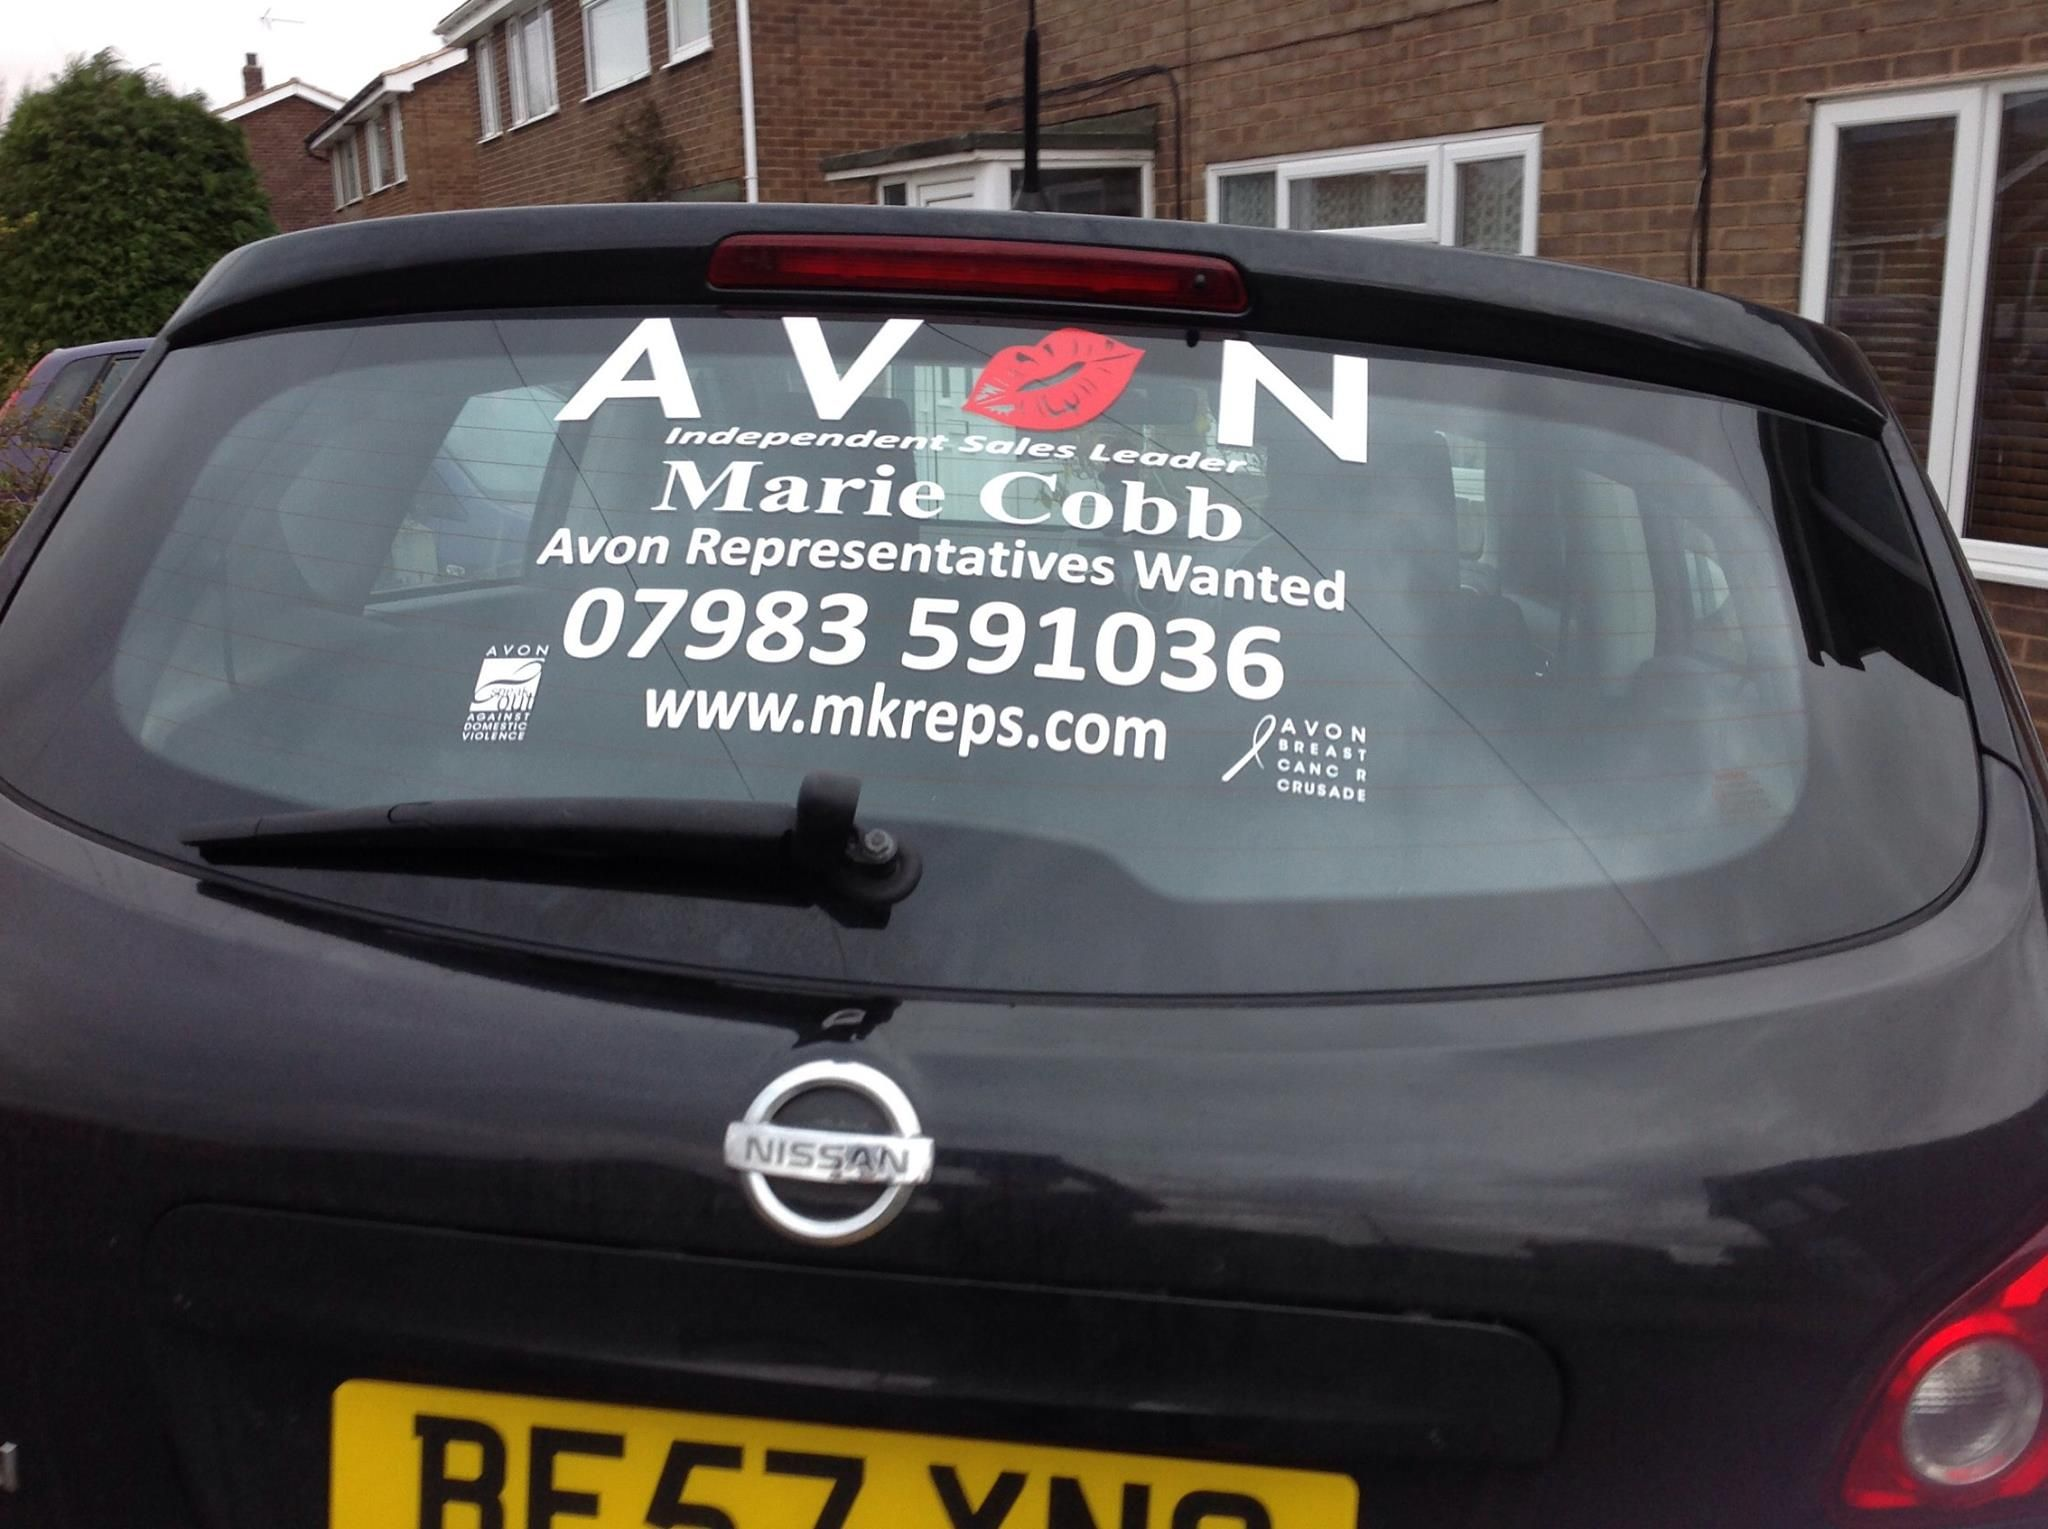 Design your own car sticker uk - A Car In The Uk With One Of Our Avon Car Signs On It